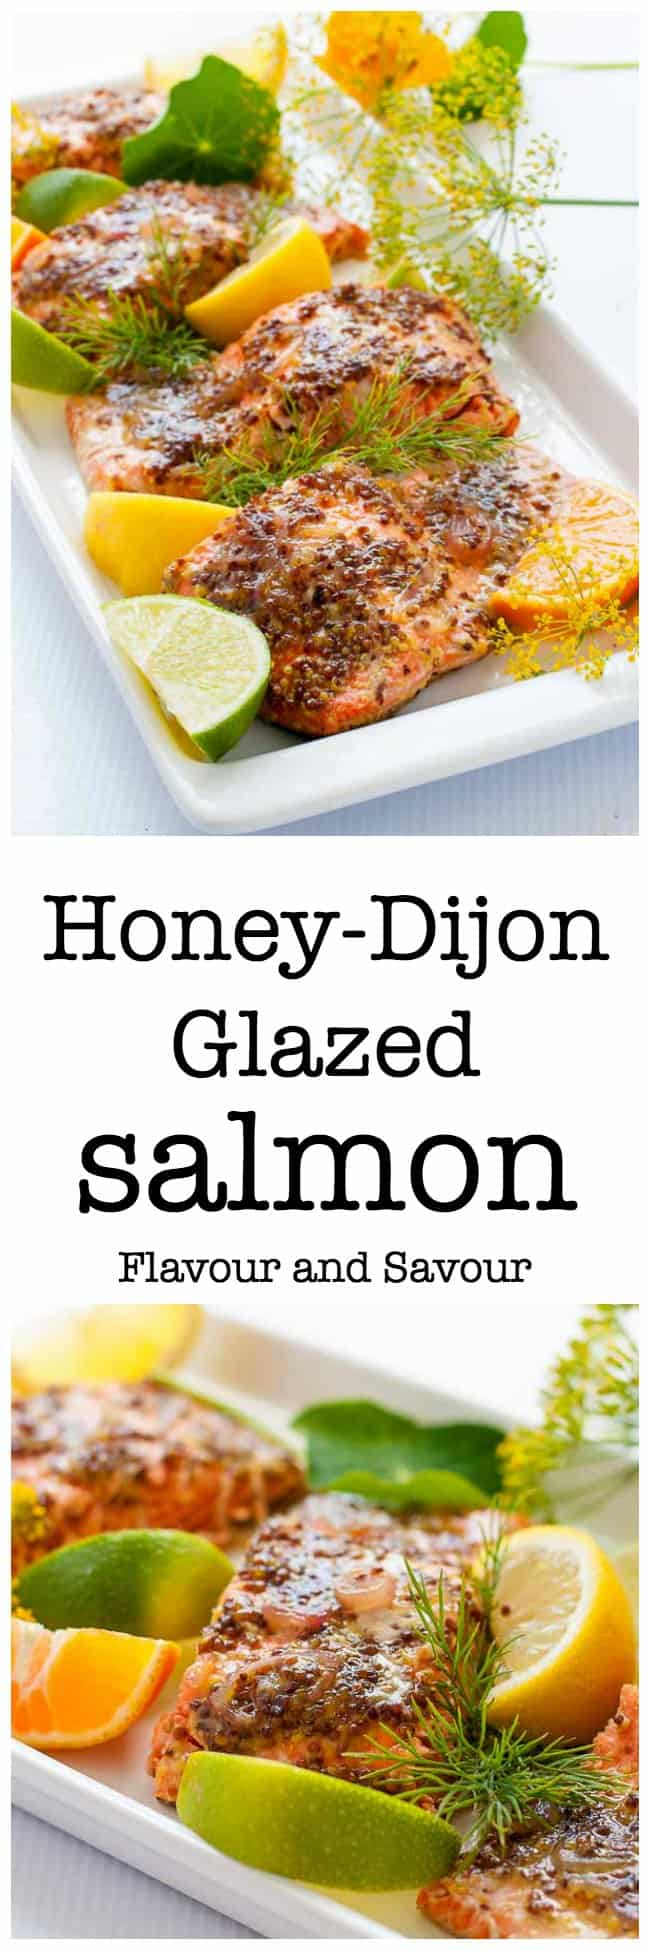 This Honey Dijon Glazed Salmon recipe has been a family favourite for years. It's quick and easy to make. Cooked in foil, you can grill it or bake it. Paleo and gluten-free. |www.flavourandsavour.com